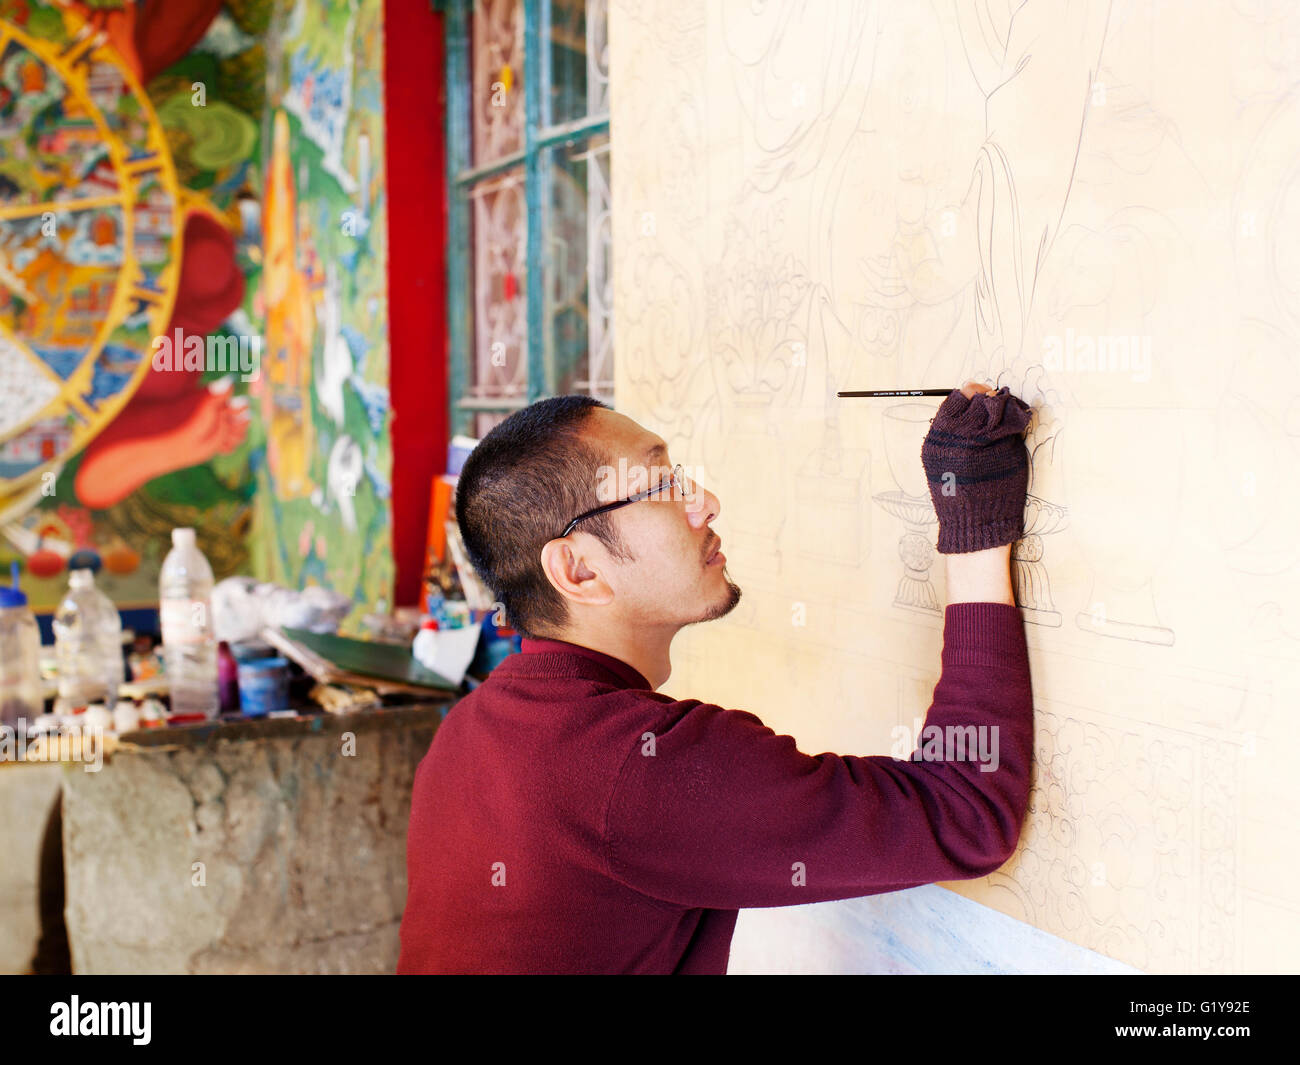 A Tibetan monk paints a mural on a wall at the entrance to the Tibetan Library of Works and Archives. - Stock Image